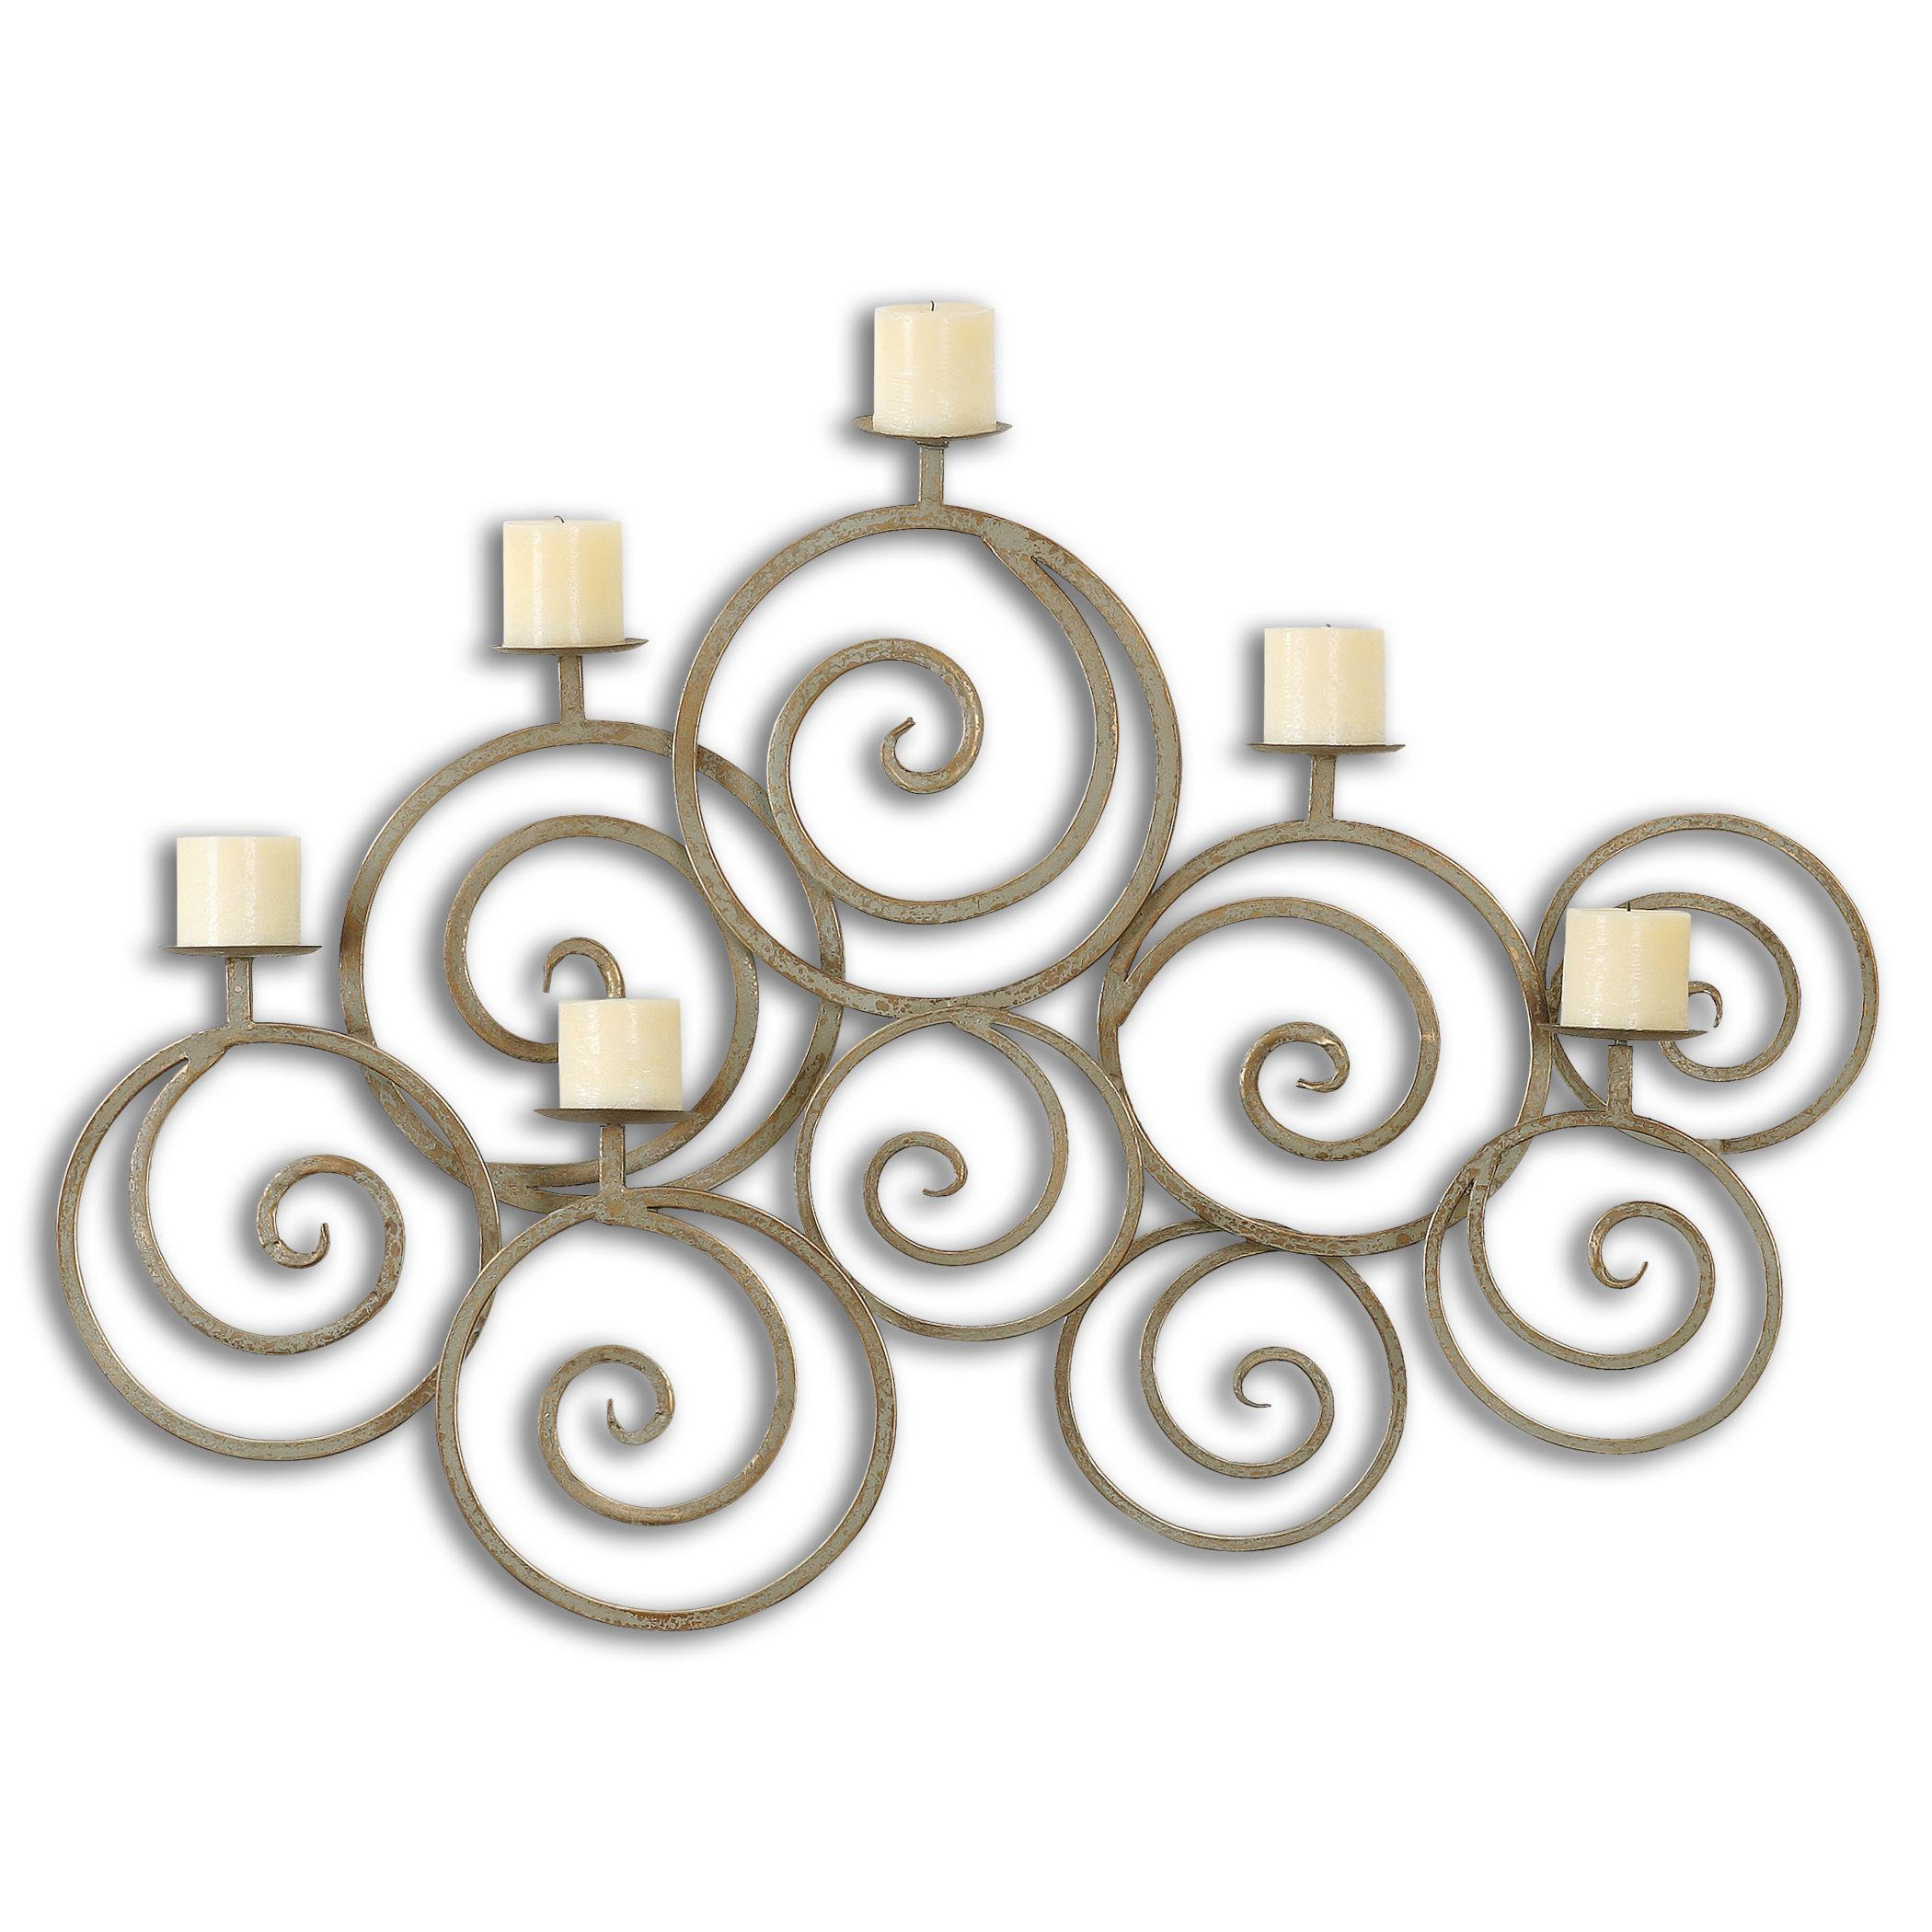 Uttermost Alternative Wall Decor Fabricia Metal Candle Sconce - Item Number: 07686